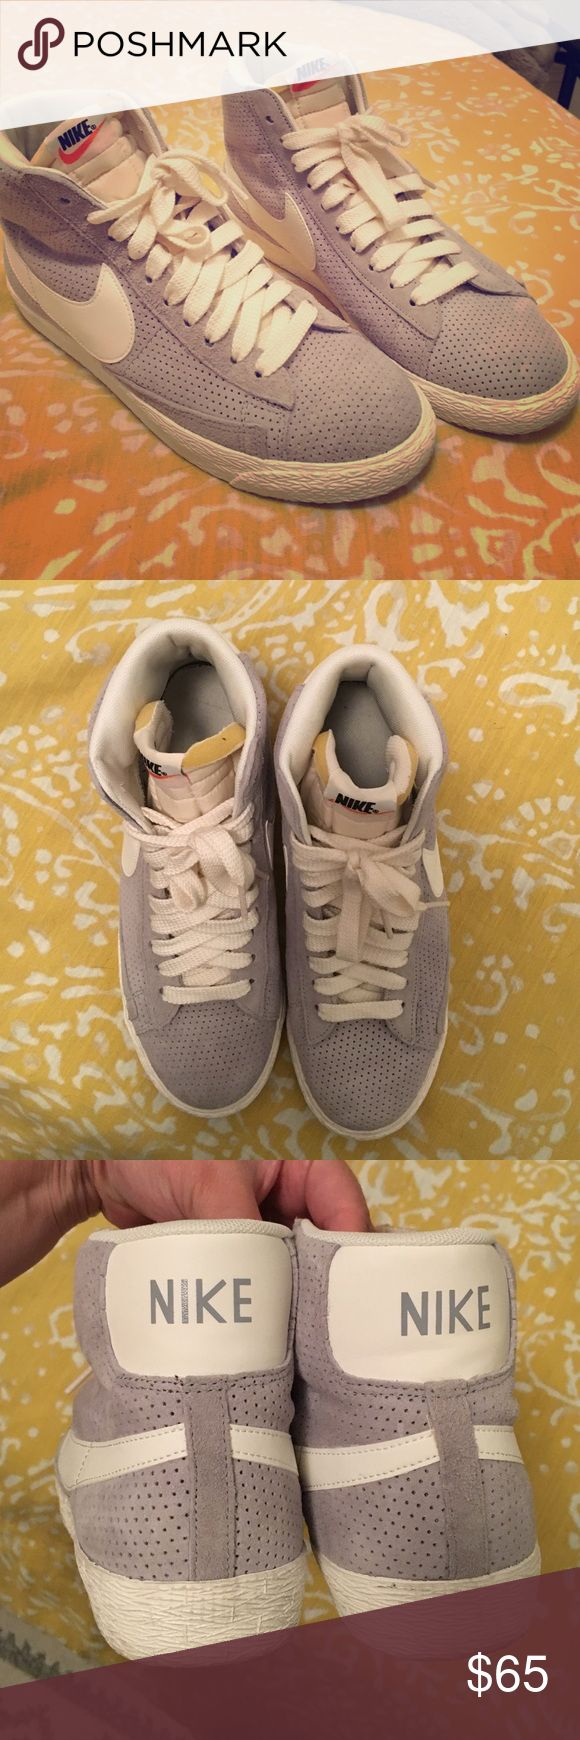 Nike Suede High Top Sneakers Grey suede, with white Nike swoosh women's high top sneakers. Worn once or twice, near perfect condition. Nike Shoes Sneakers